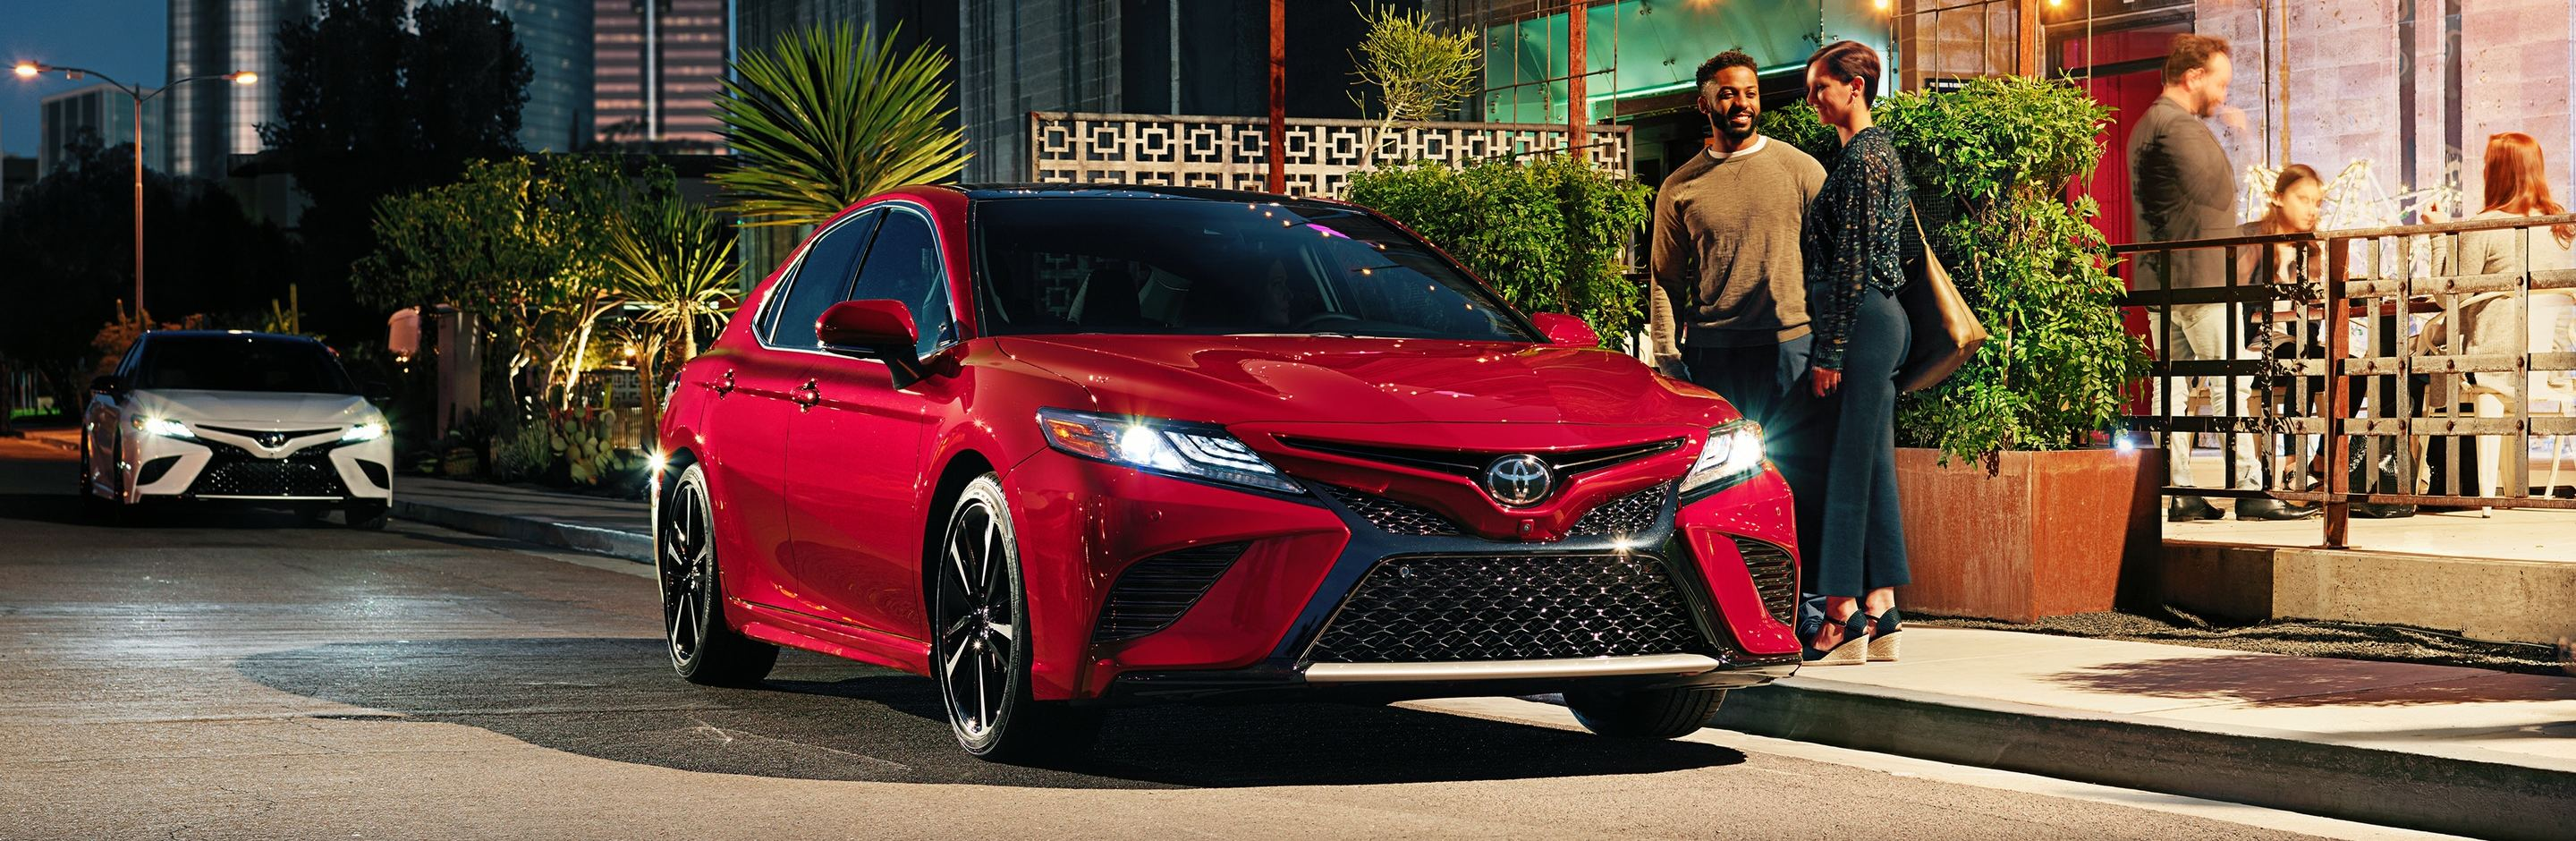 2020 Toyota Camry Financing in Rockford, IL